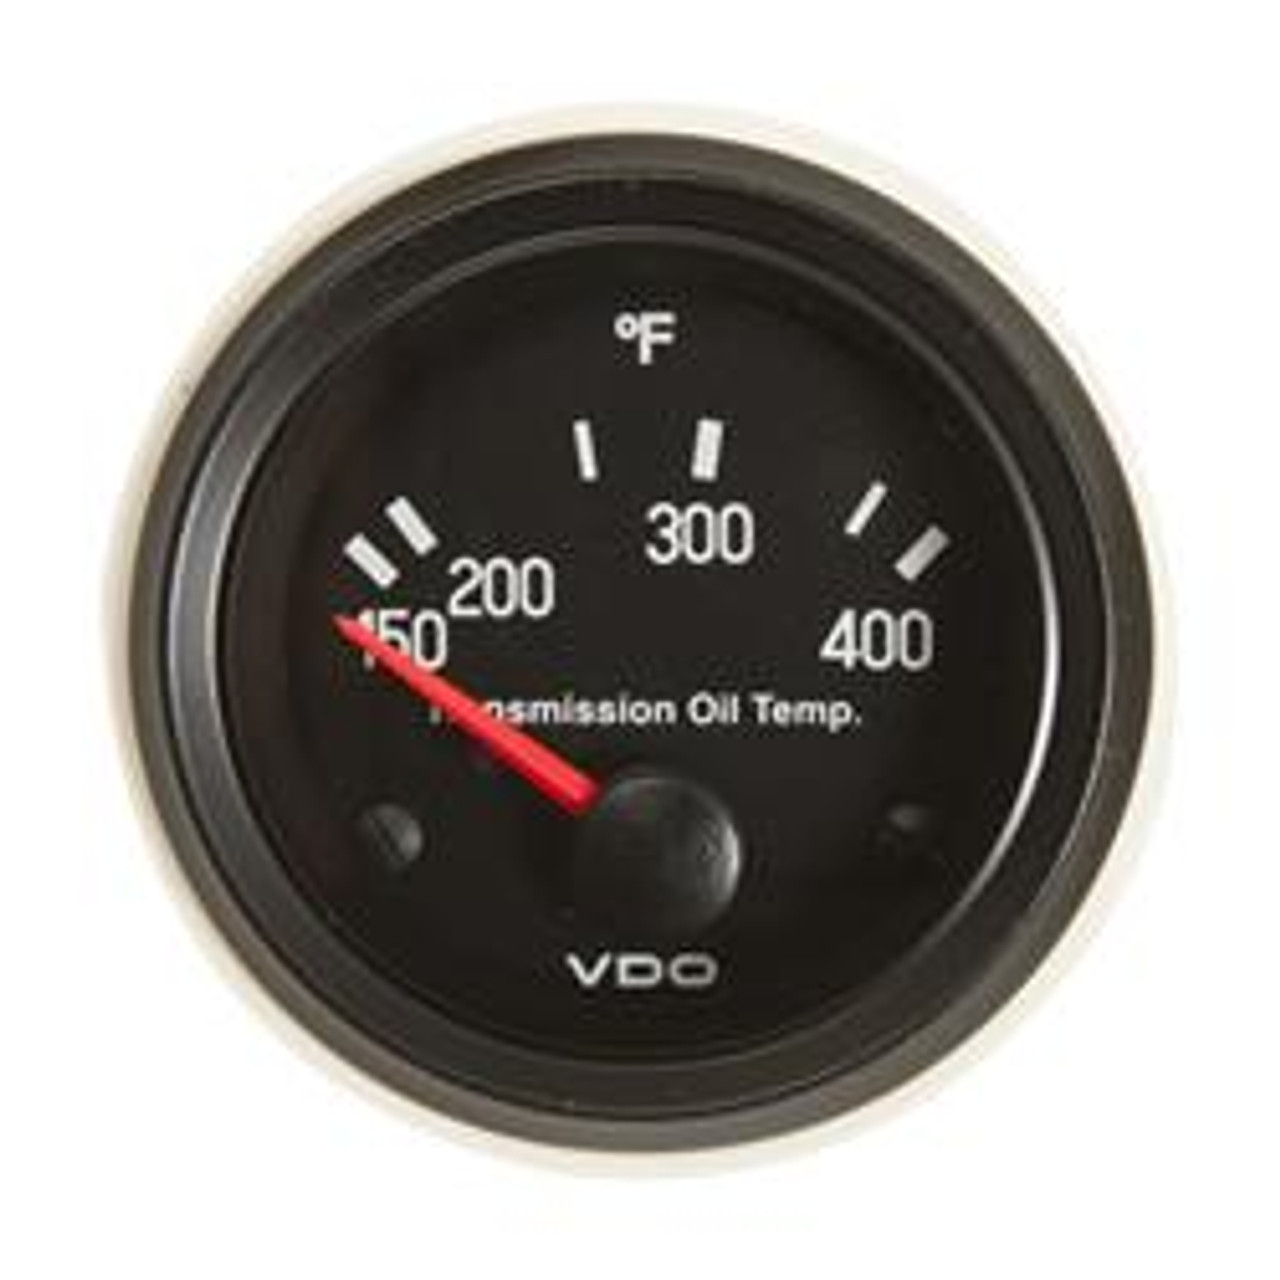 """VDO Cockpit Series Part #310-015 Transmission Temperature, 150 - 400 Degrees F. 52mm (2 1/16"""") Diameter, Halo Lighted. 12 Volt. Requires VDO 10-180 Ohm 400 Degree Sender.  List $58.40    PLEASE NOTE: Threads on Sender Are Self-Sealing, Use of Sealing Compounds Will Effect Sender Operation.          Can't Find What You are looking for... Contact our Technical Support Staff!"""